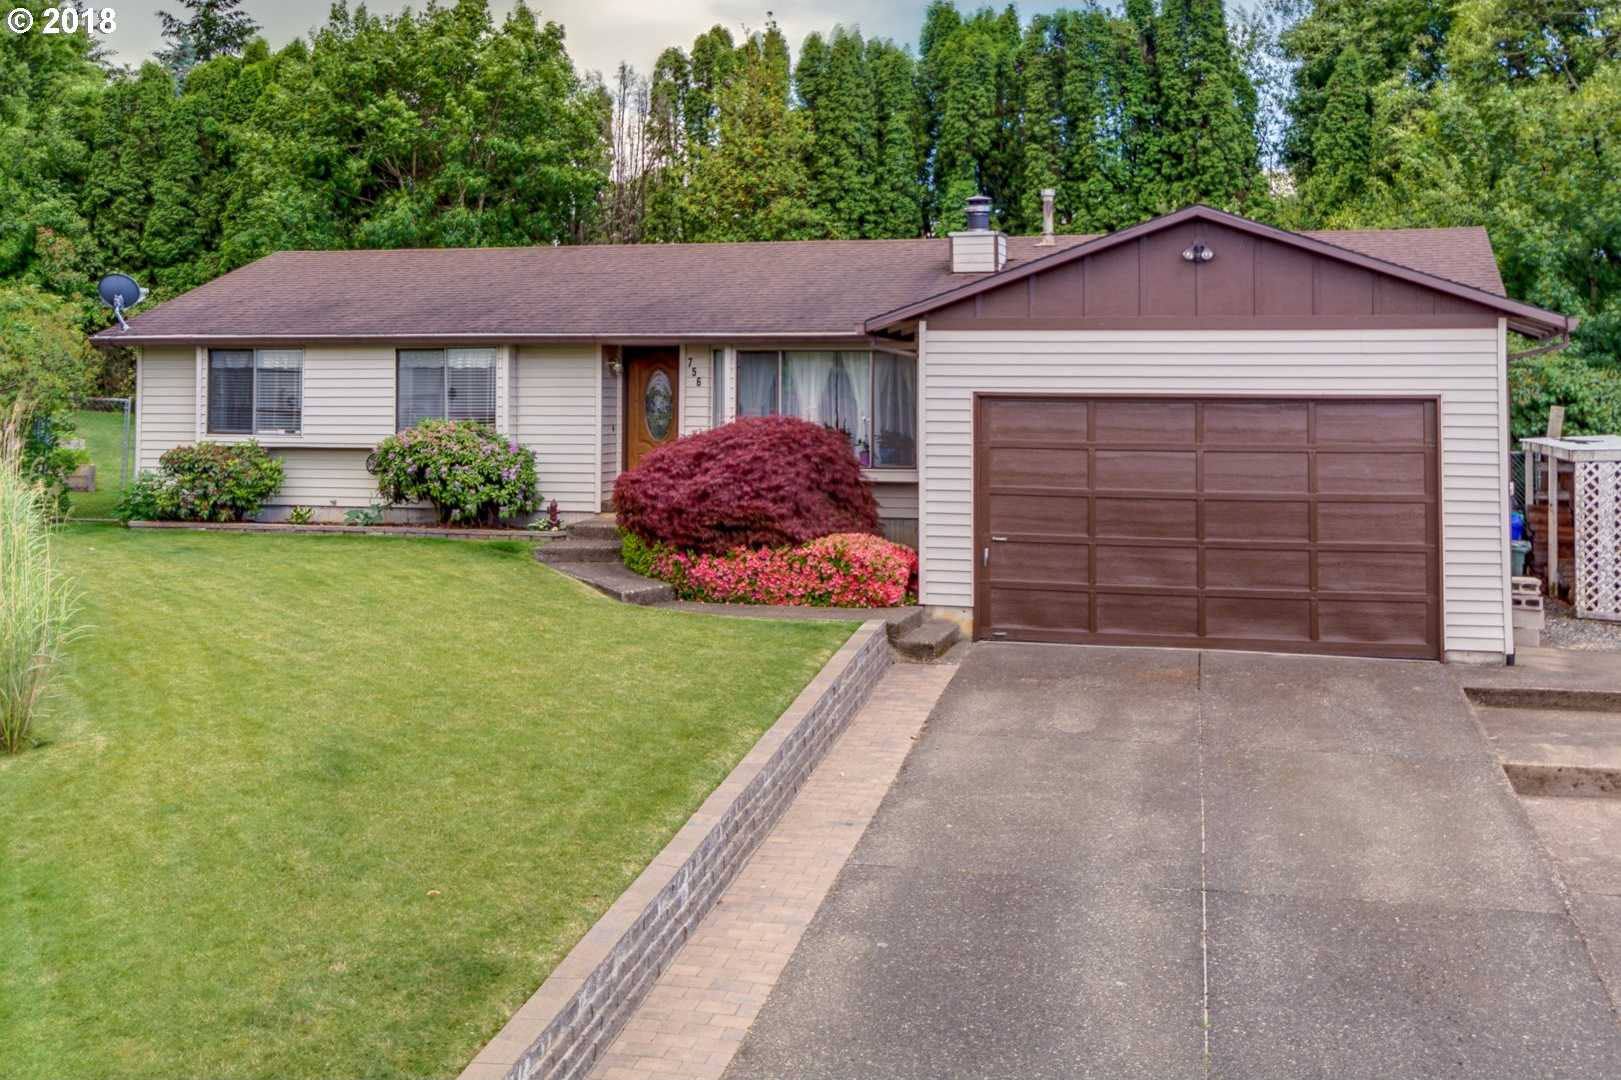 $309,000 - 3Br/2Ba -  for Sale in Gresham